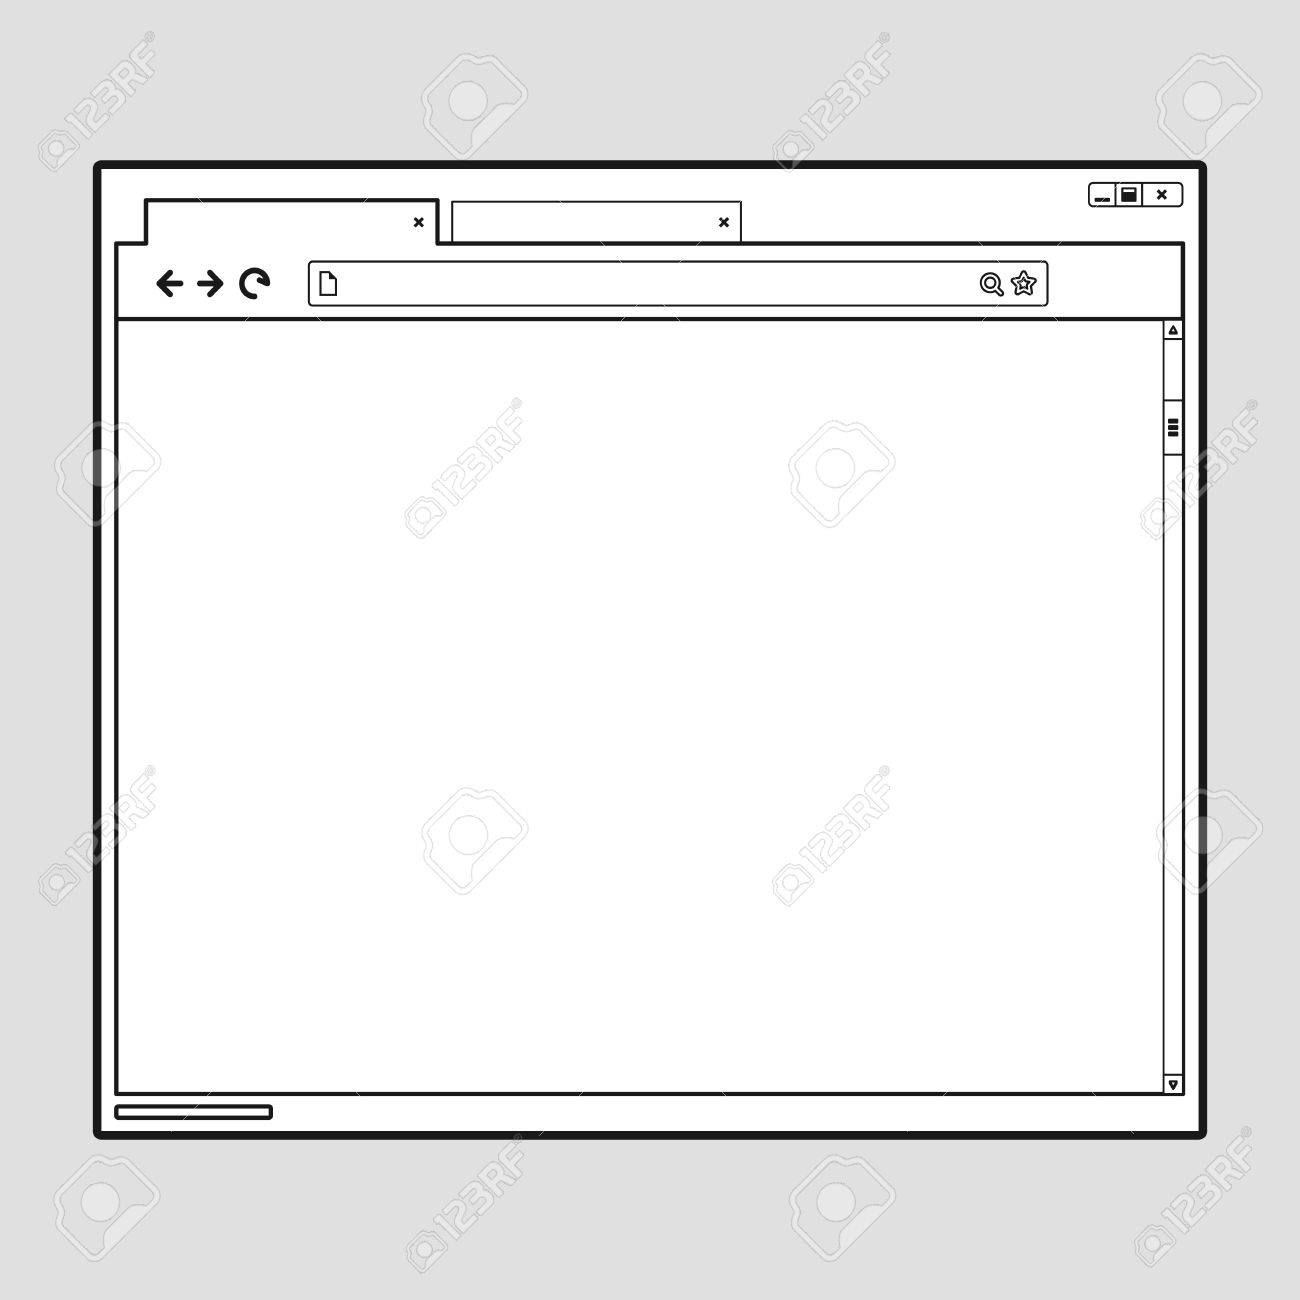 opened browser window template. past your content into it. web